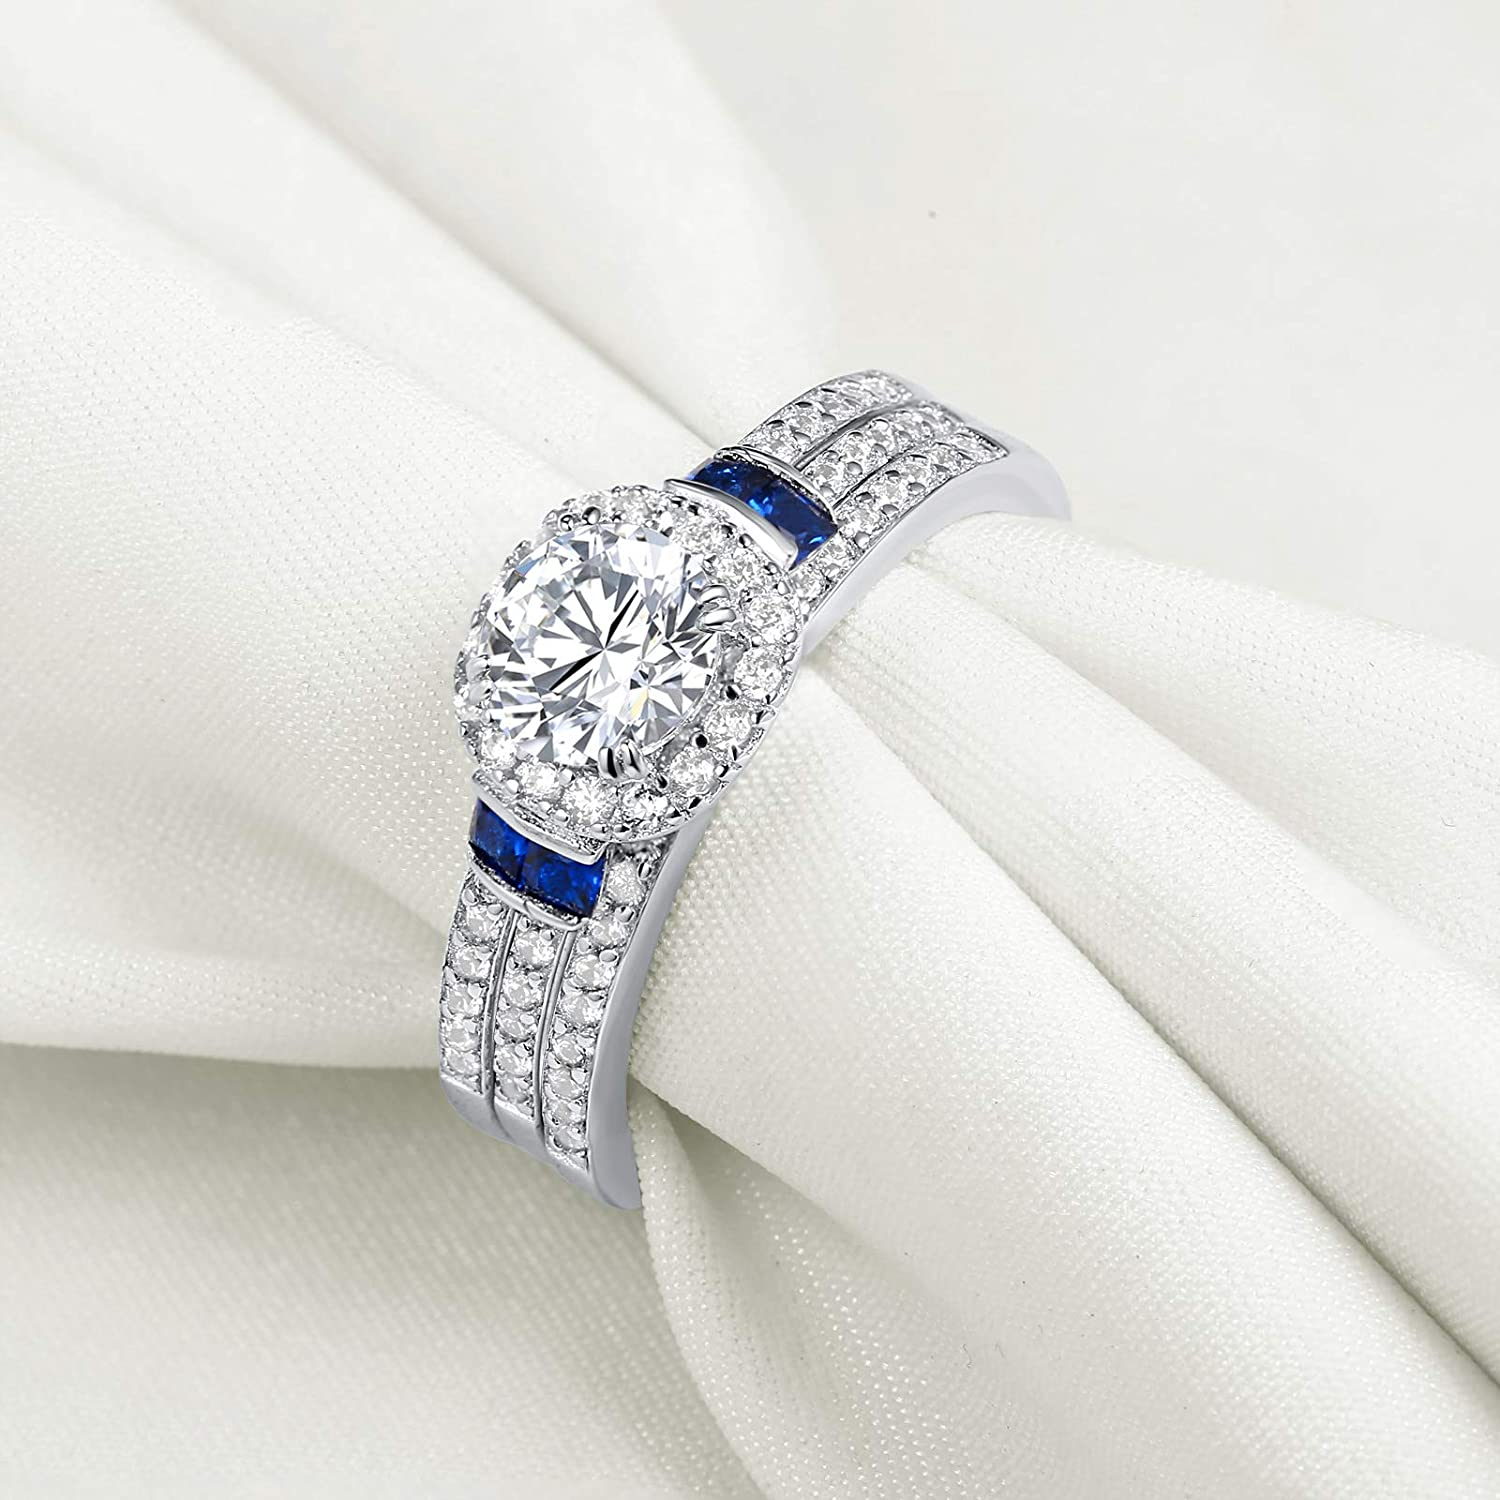 Newshe 3pcs Created Blue Sapphire AAA Cz 925 Sterling Silver Engagement Wedding Ring Set Size 5-10